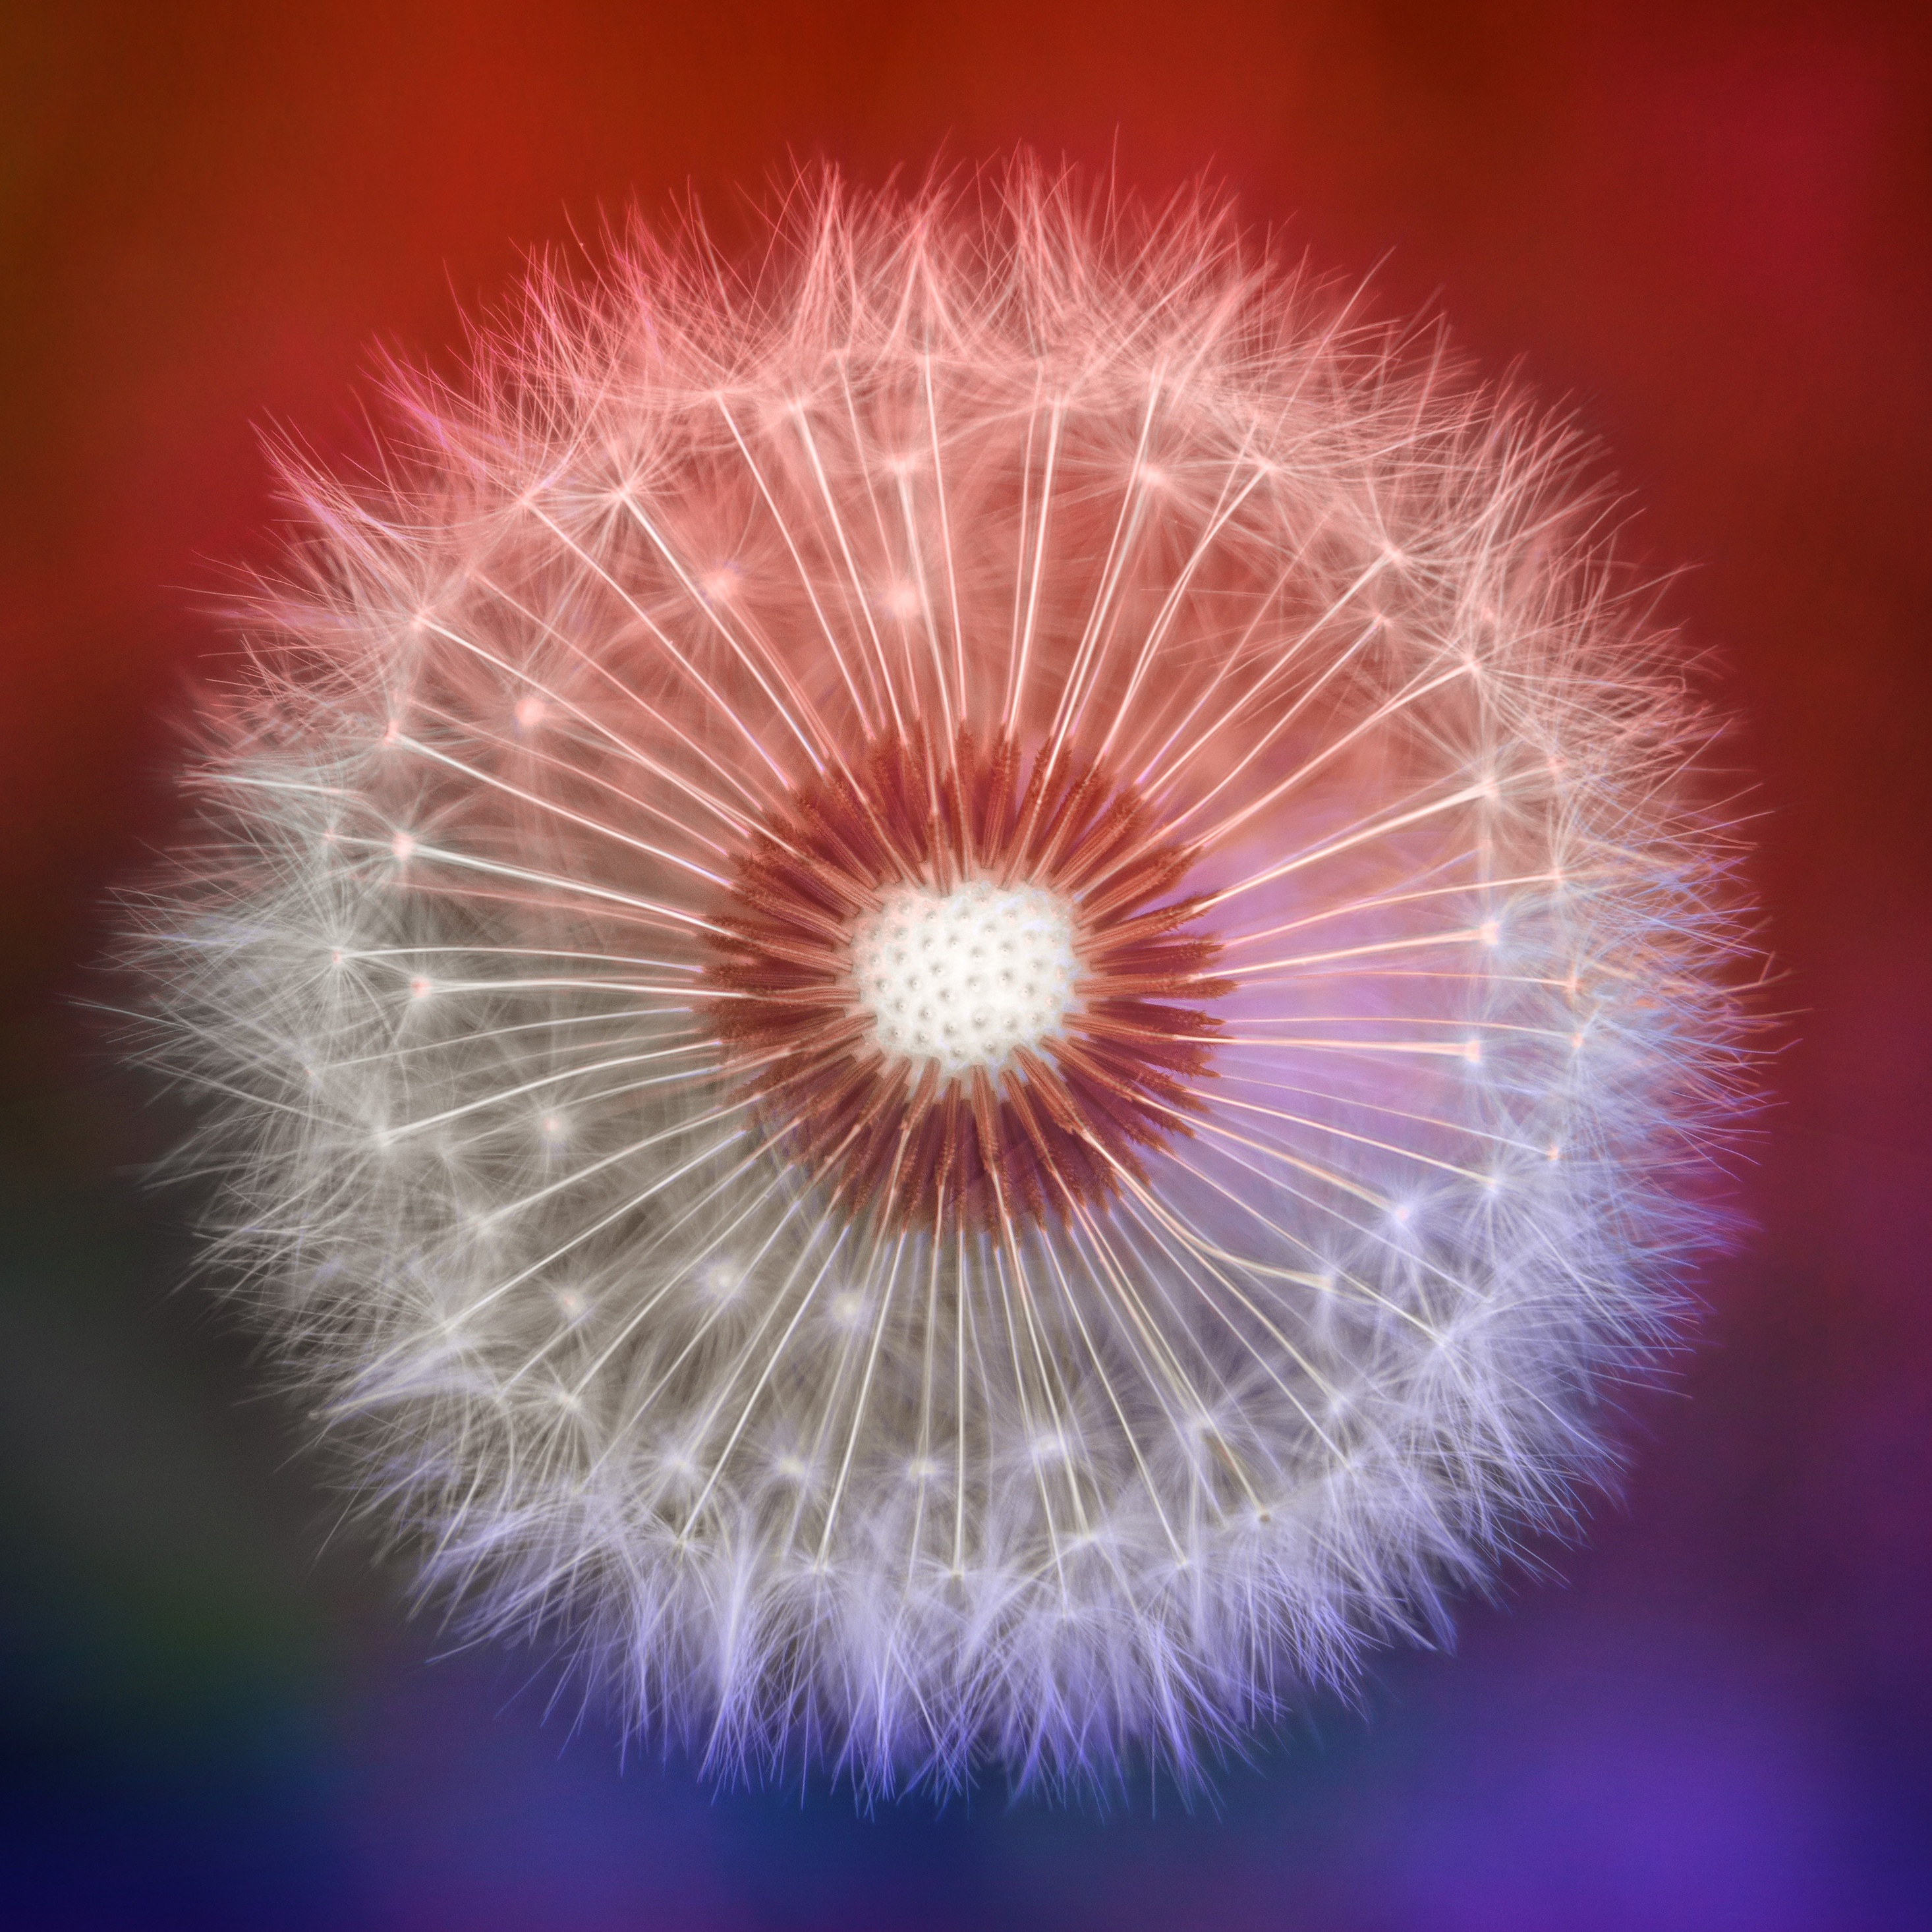 close-up-dandelions-l9.jpg